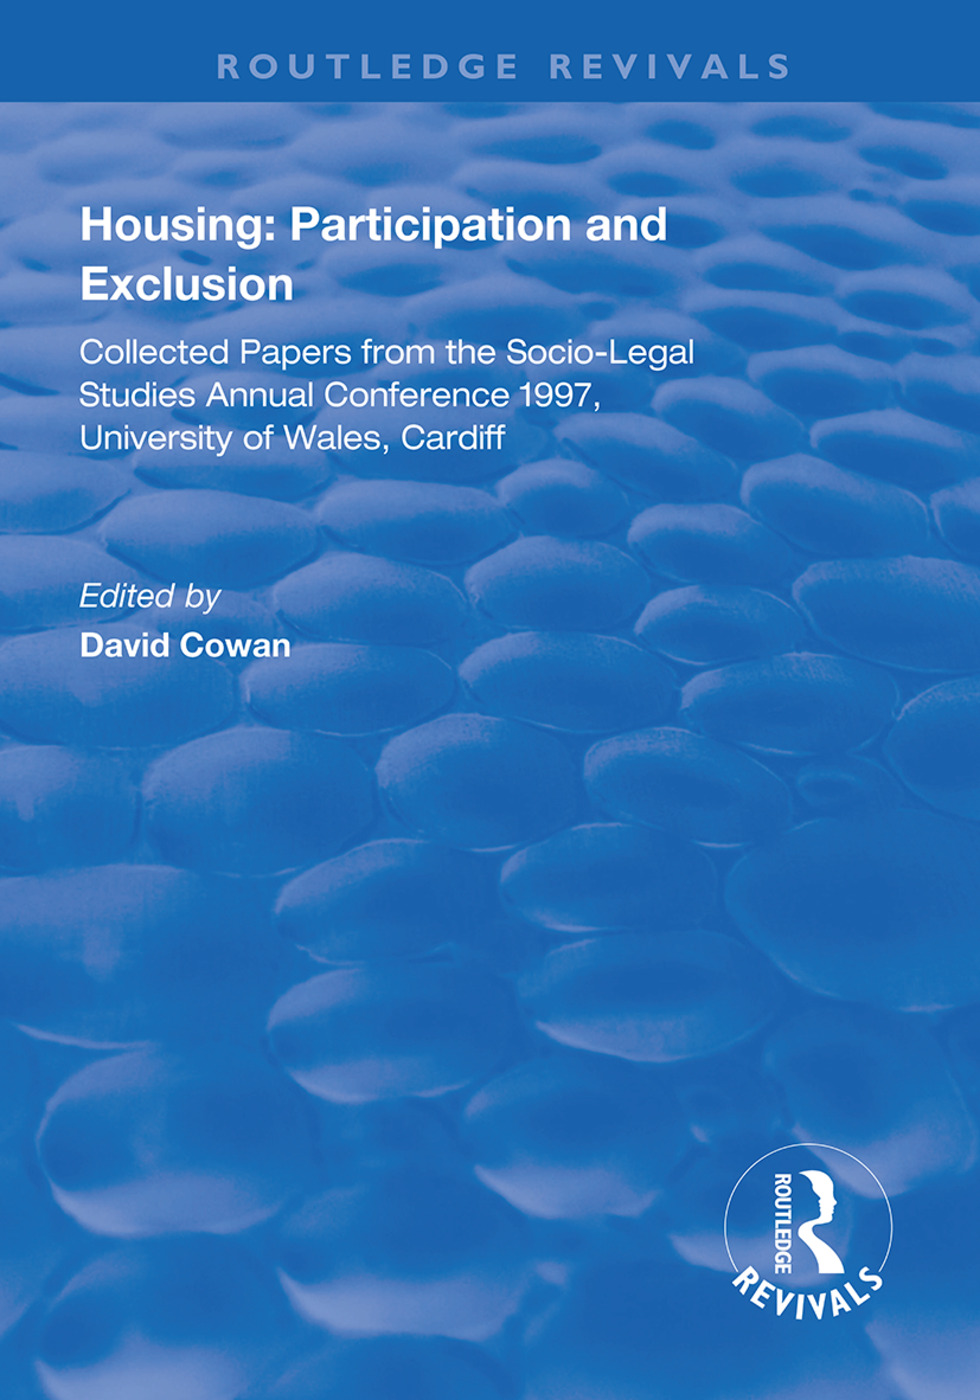 Housing: Participation and Exclusion